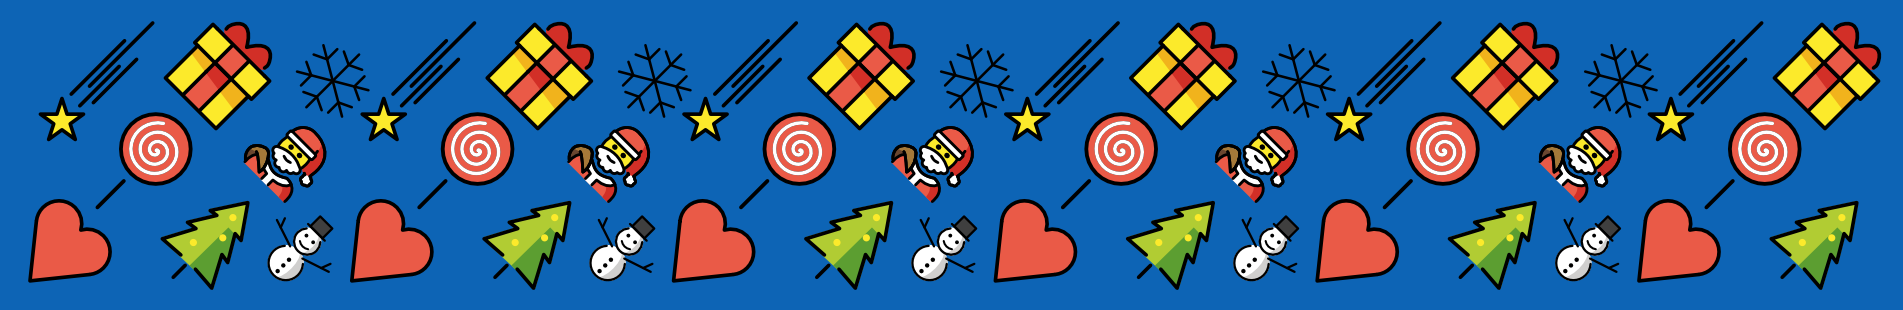 Christmas.org.uk-Header.png